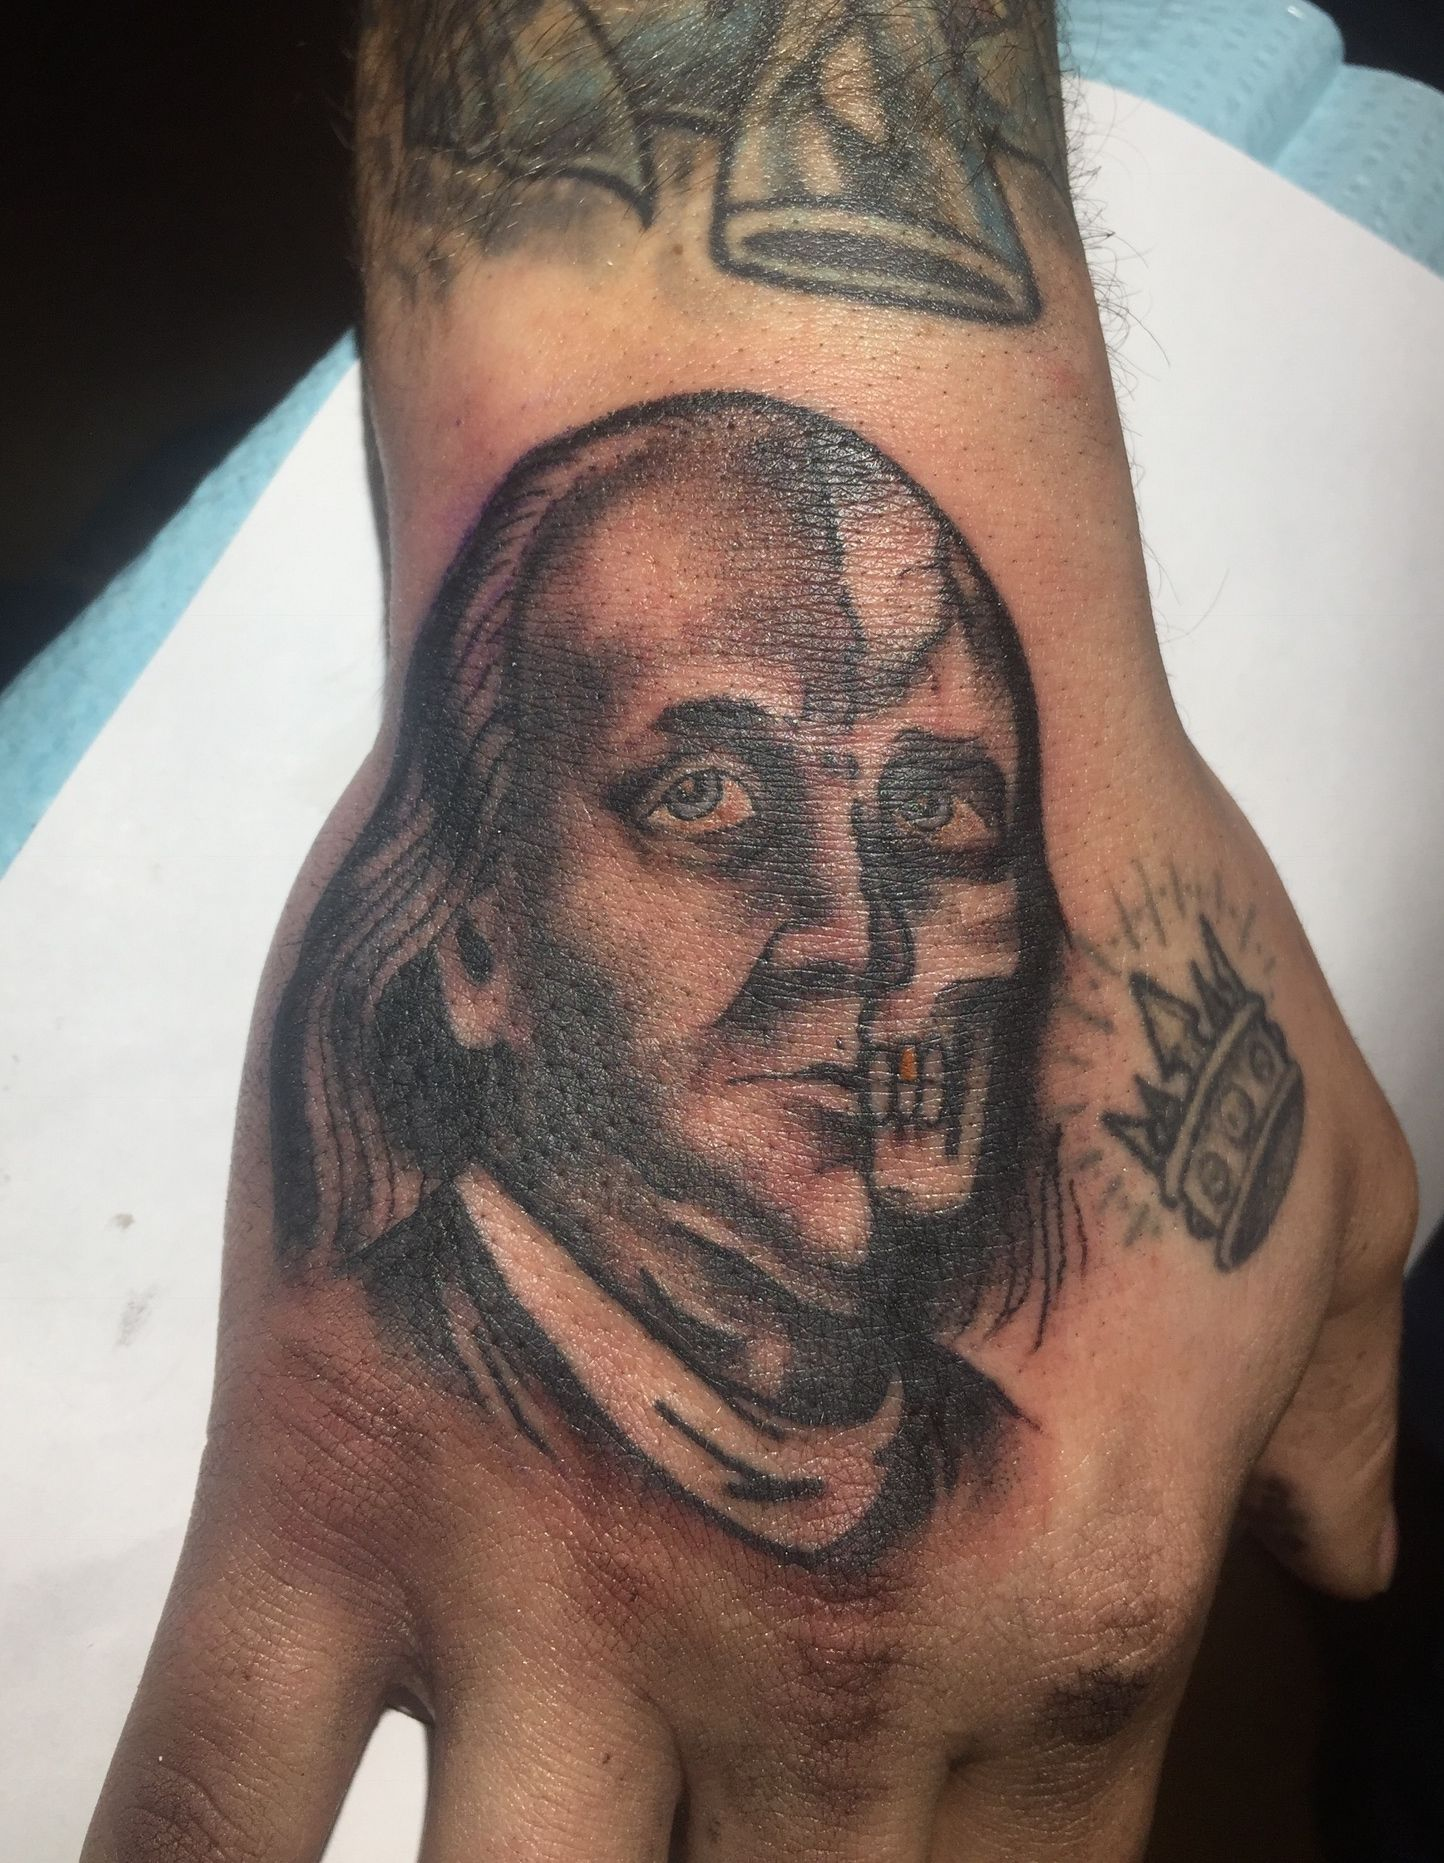 Two faced benjamin franklin tattoo made by jef wright jef two faced benjamin franklin tattoo made by jef wright buycottarizona